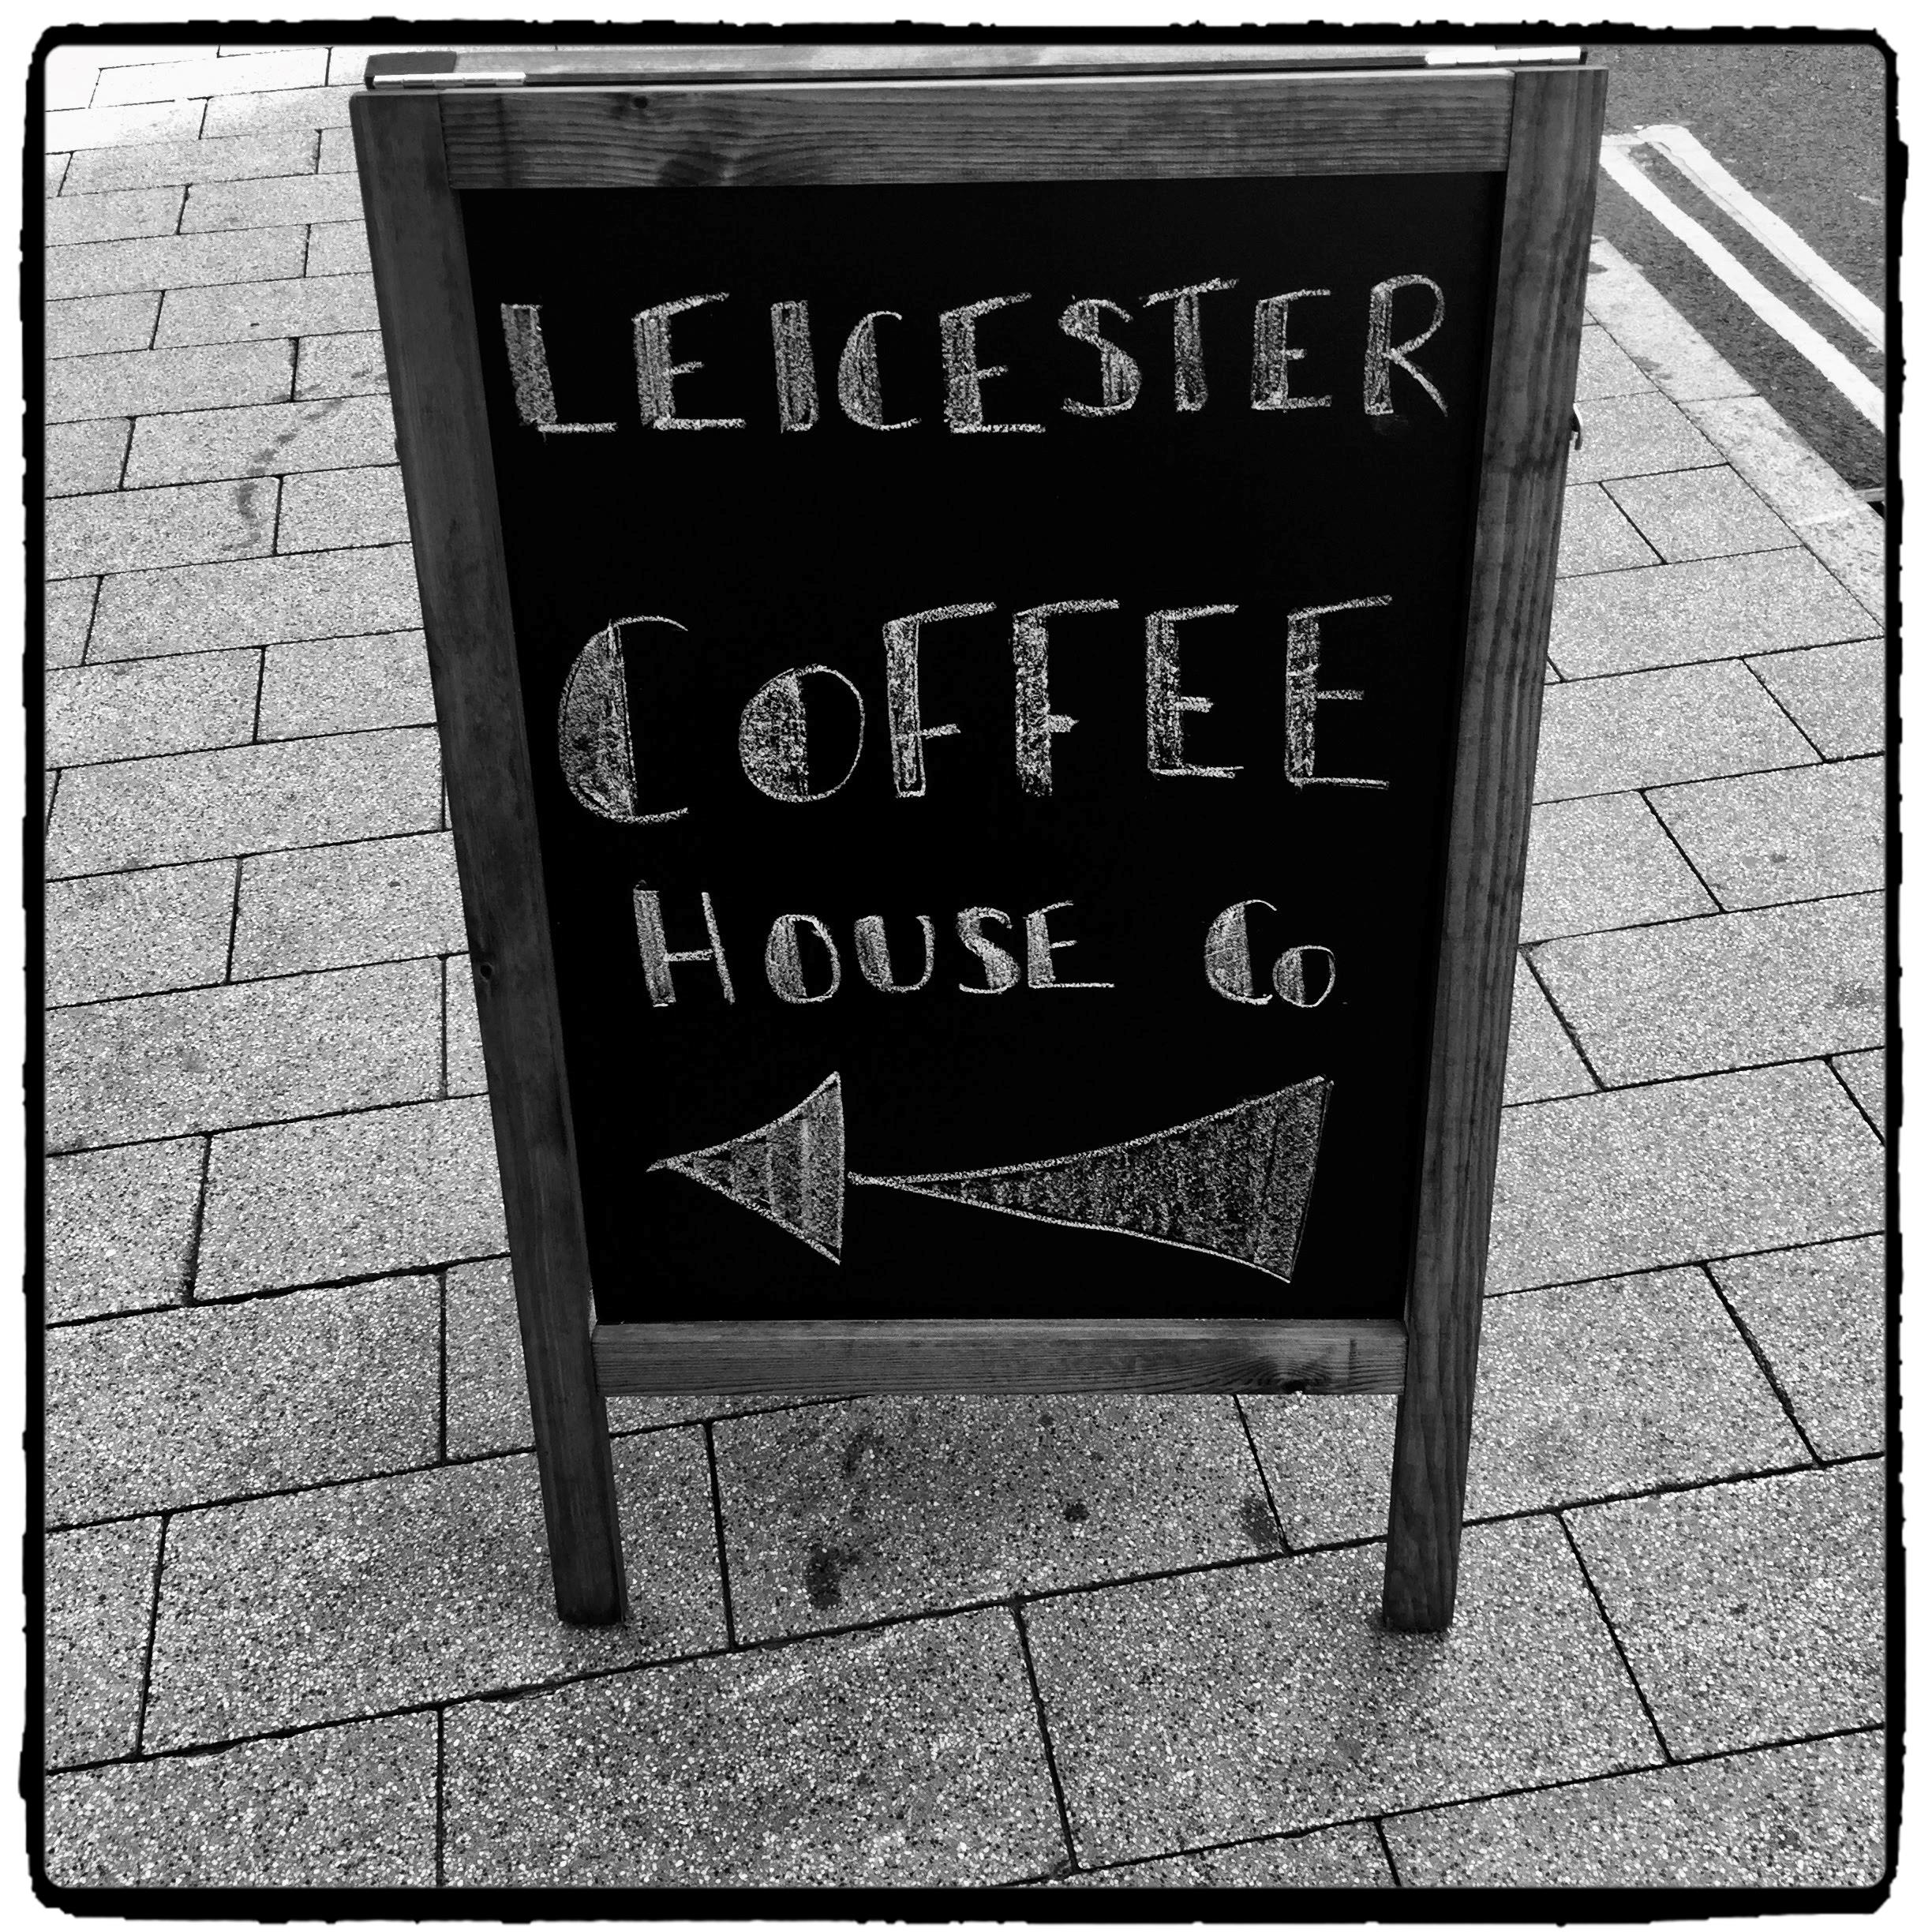 Sign pointing towards a great new coffee outlet on Granby Street, Leicester UK